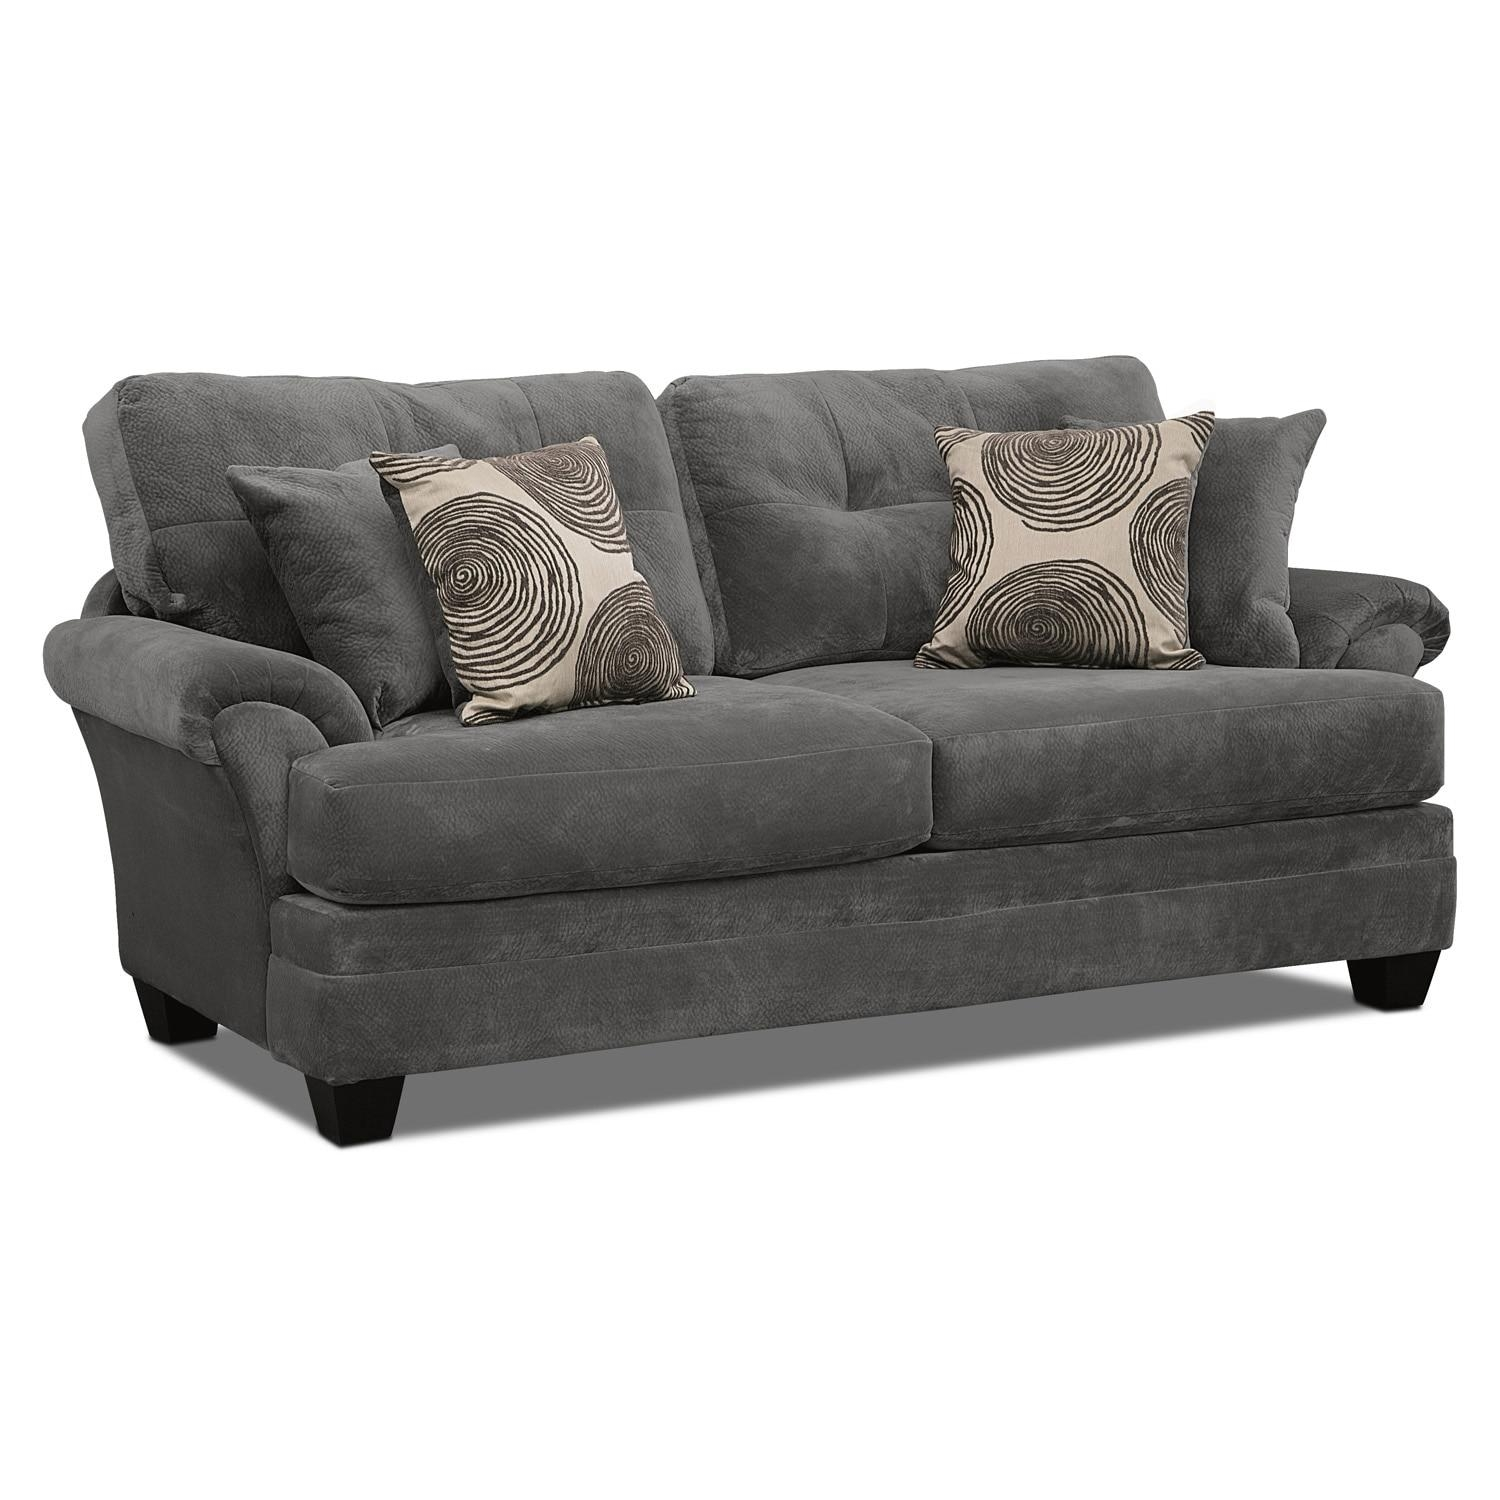 Sofas Center : Swivel Sofa Chair And Setround Chairsofa Set Round Inside Round Swivel Sofa Chairs (Image 19 of 20)